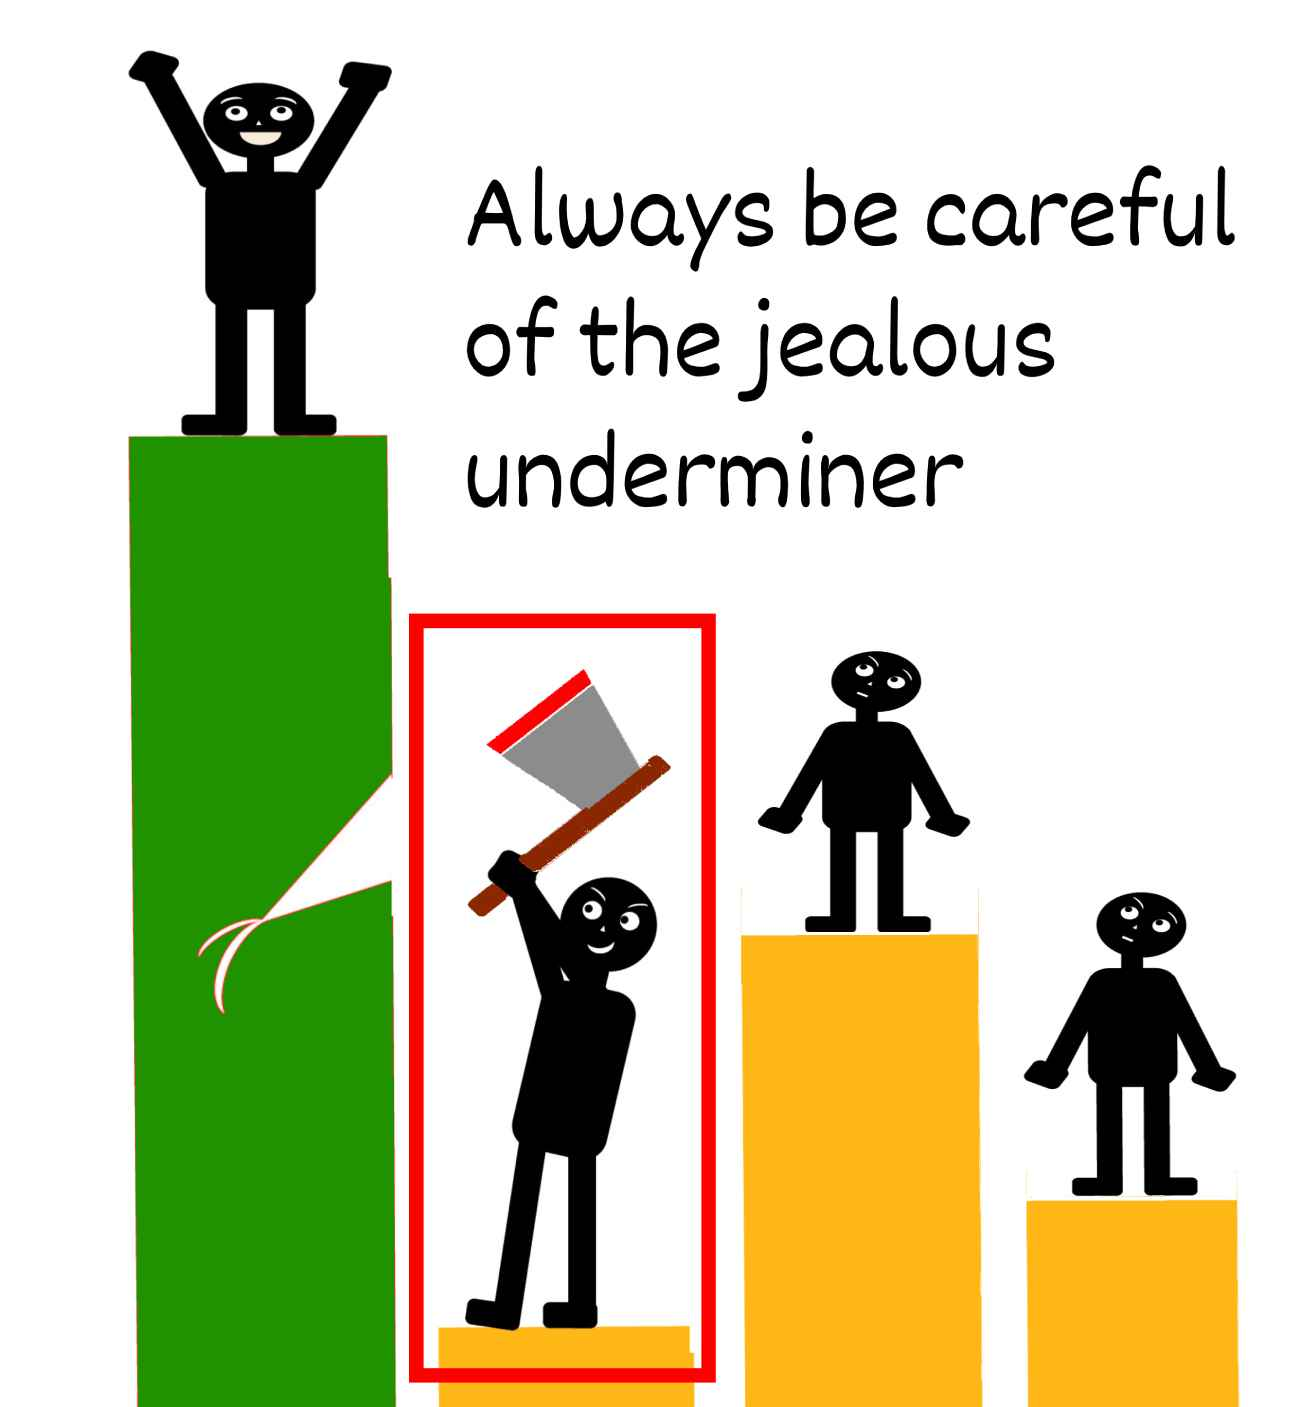 an underminer undermines a winner